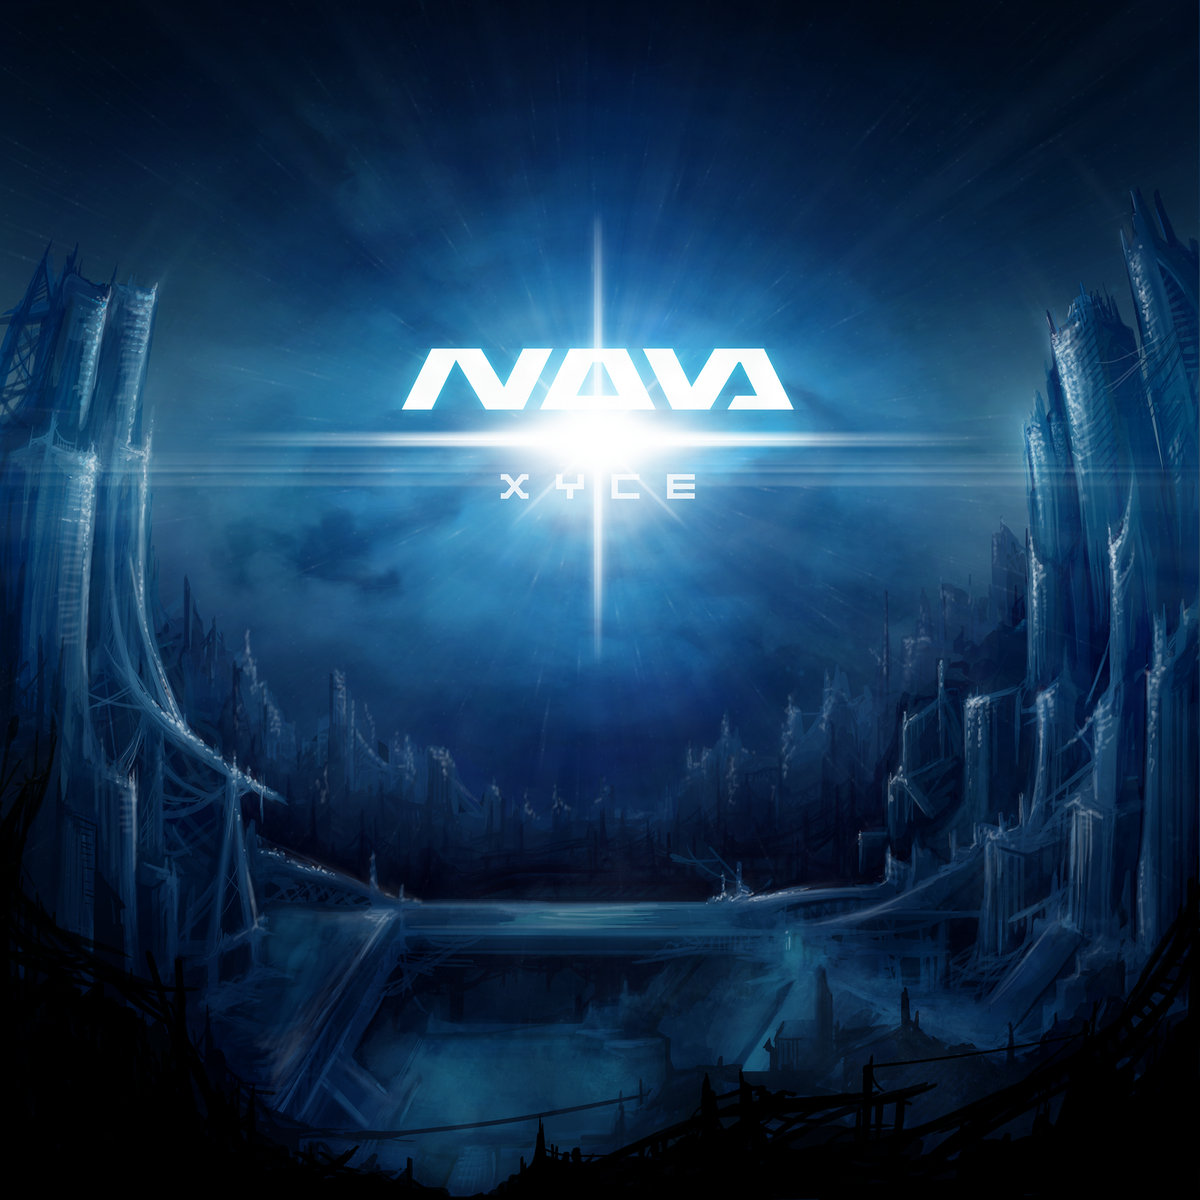 Xyce-Nova-2014-FNT Download